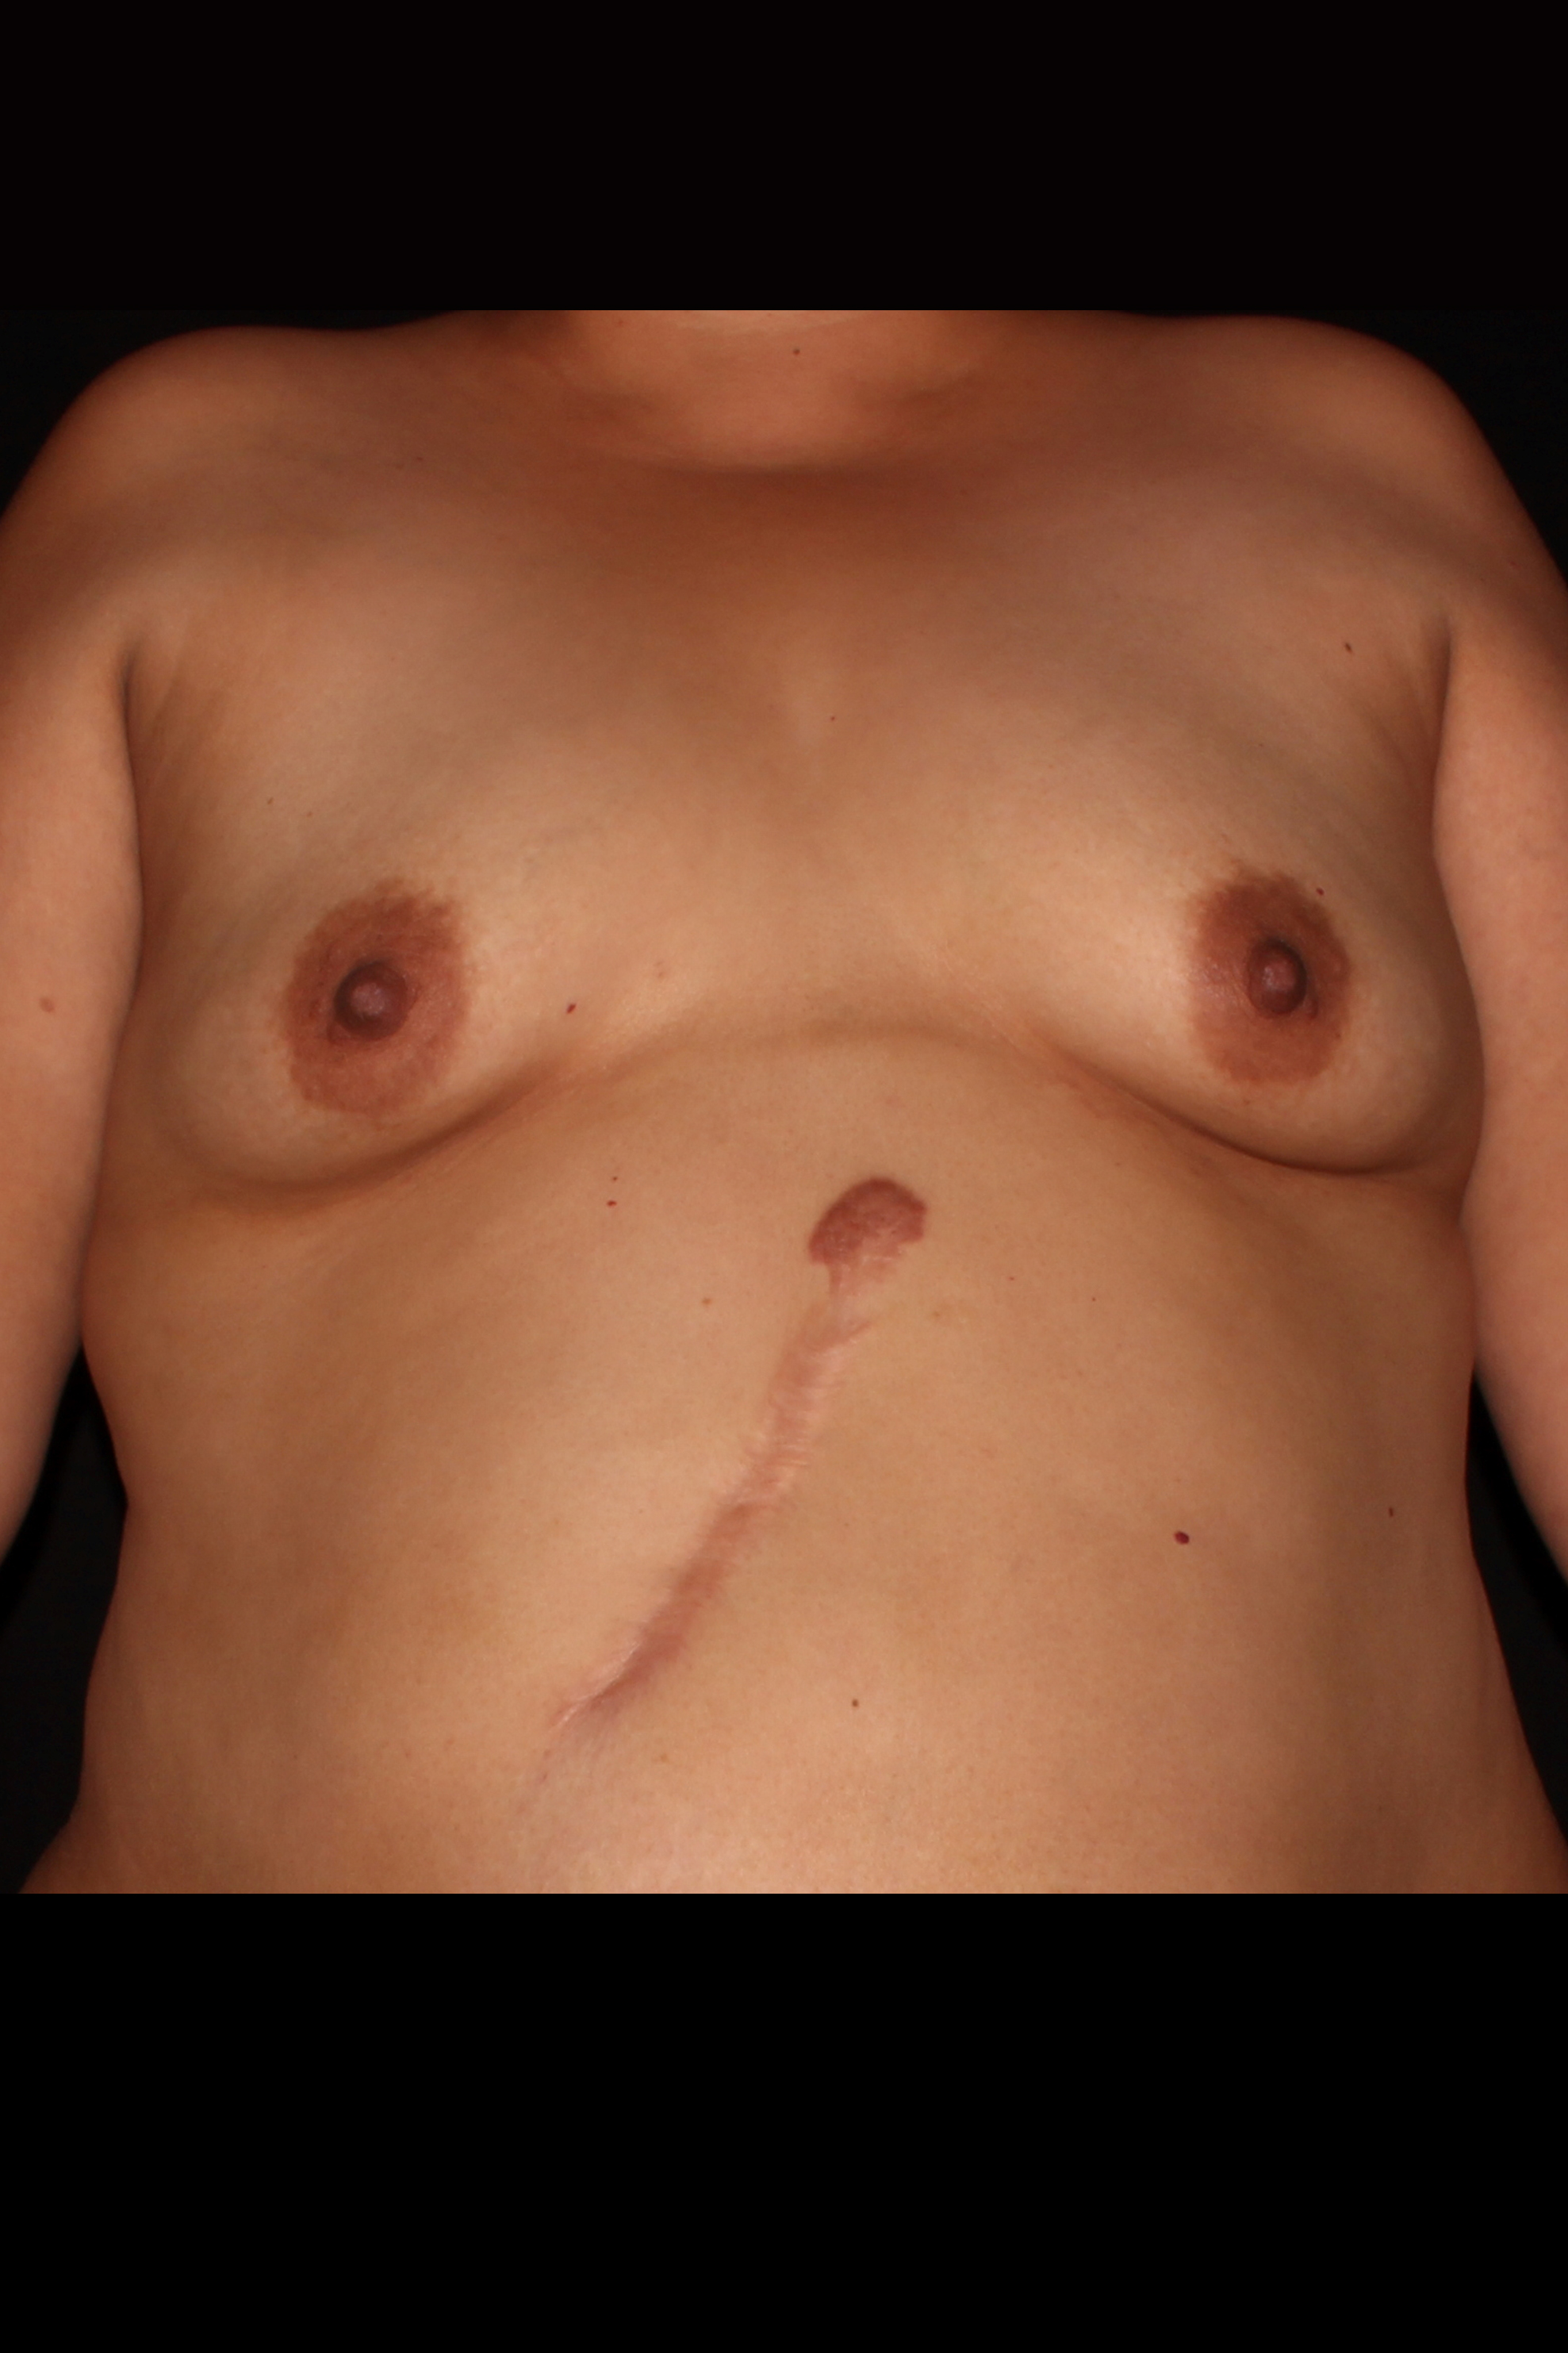 Before Fat Transfer to Breast - Breast Augmentation with Fat Transfer